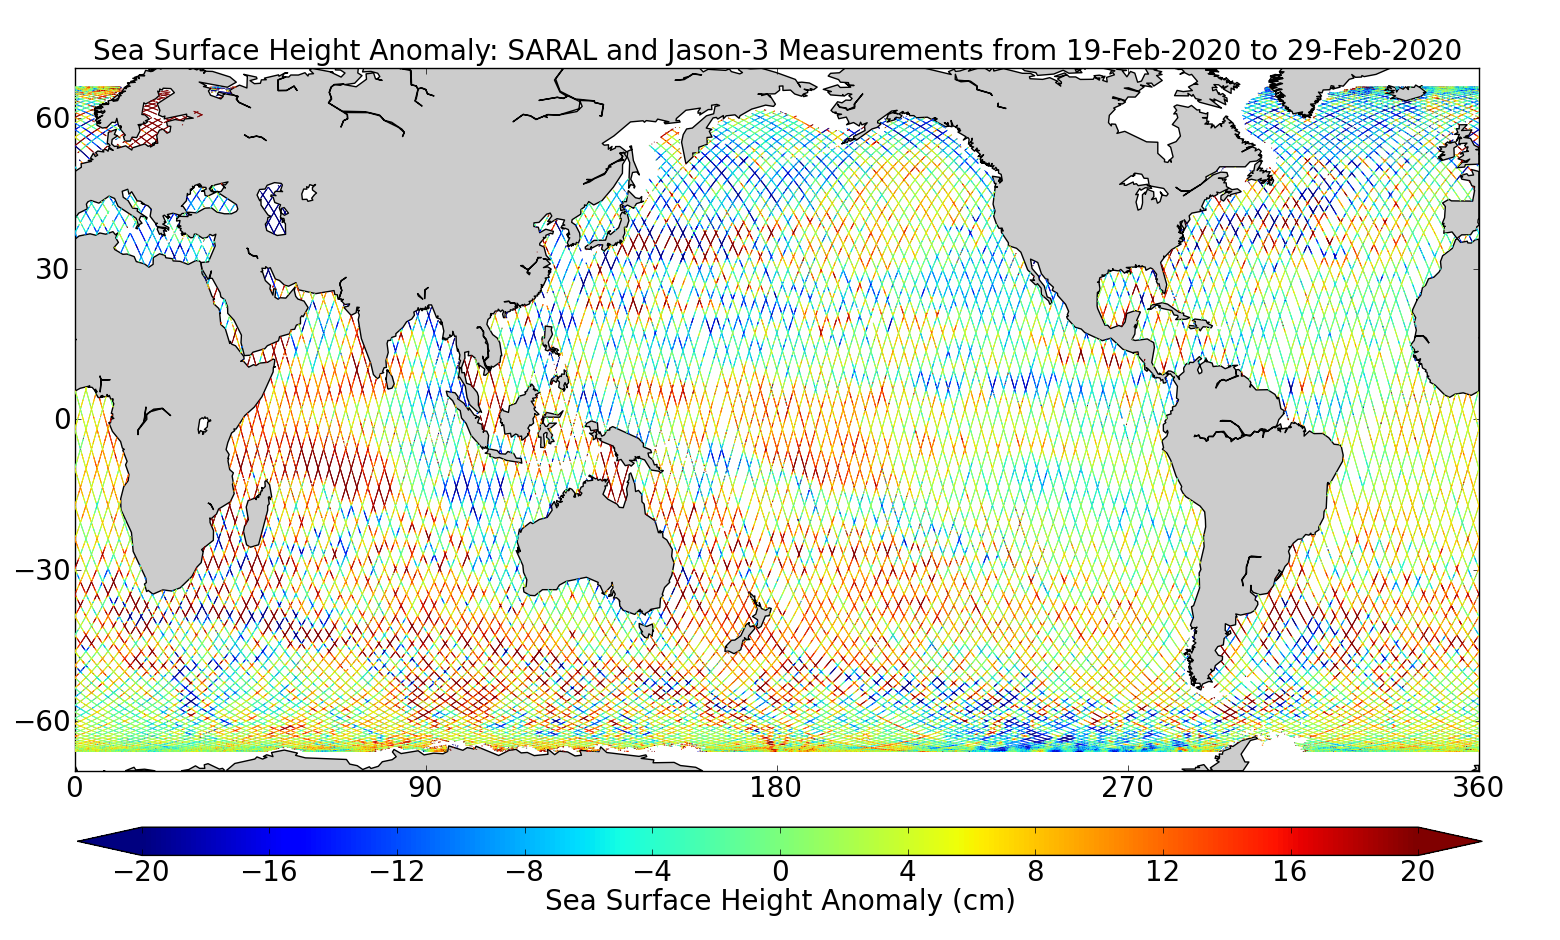 Sea Surface Height Anomaly: SARAL and Jason-3 Measurements from 19-Feb-2020 to 29-Feb-2020